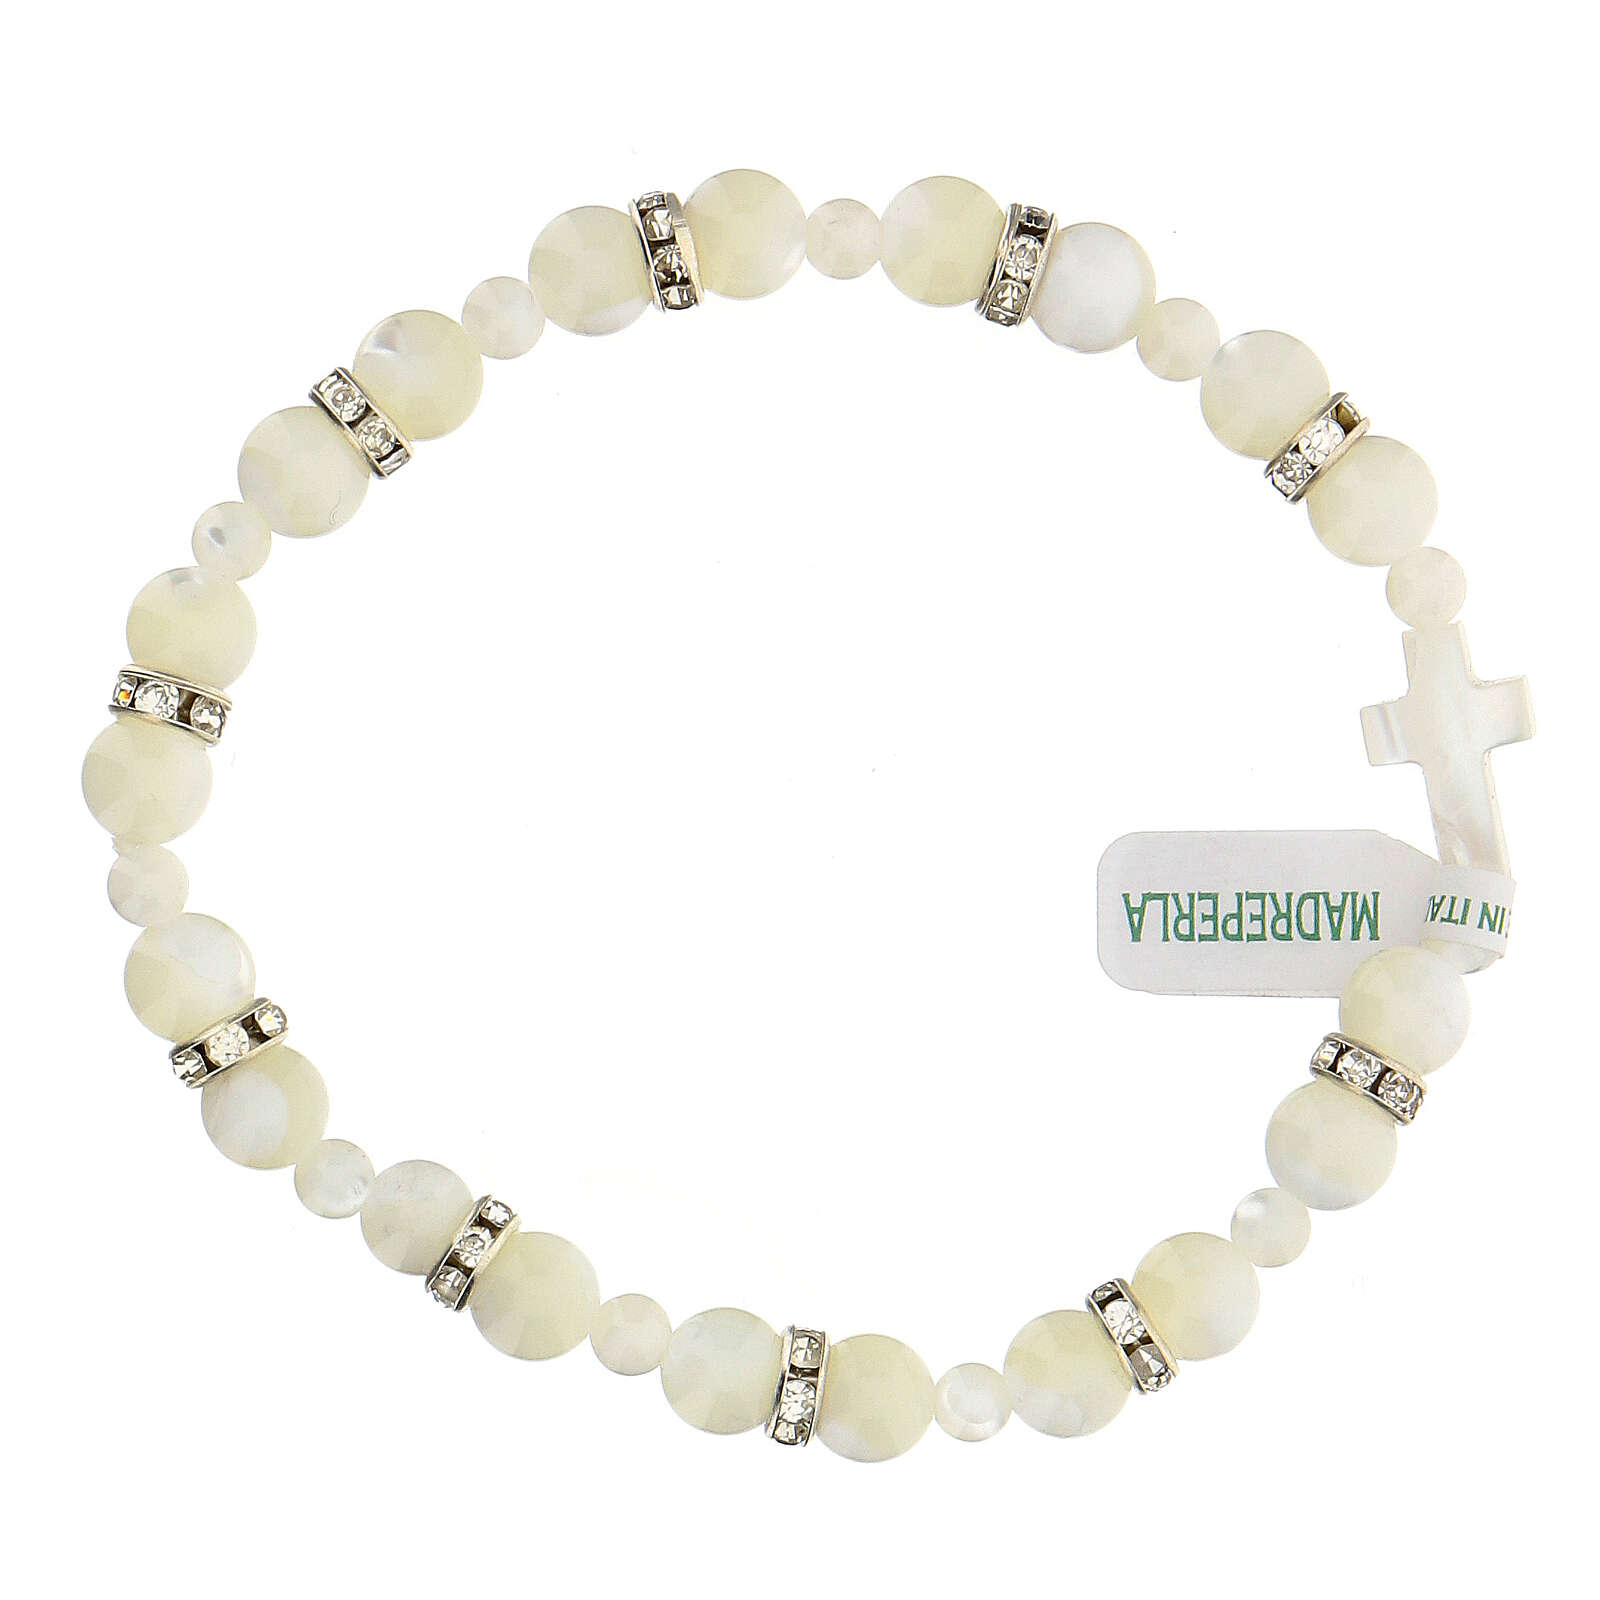 Decade rosary in real white mother of pearl beads 7x7 mm 4